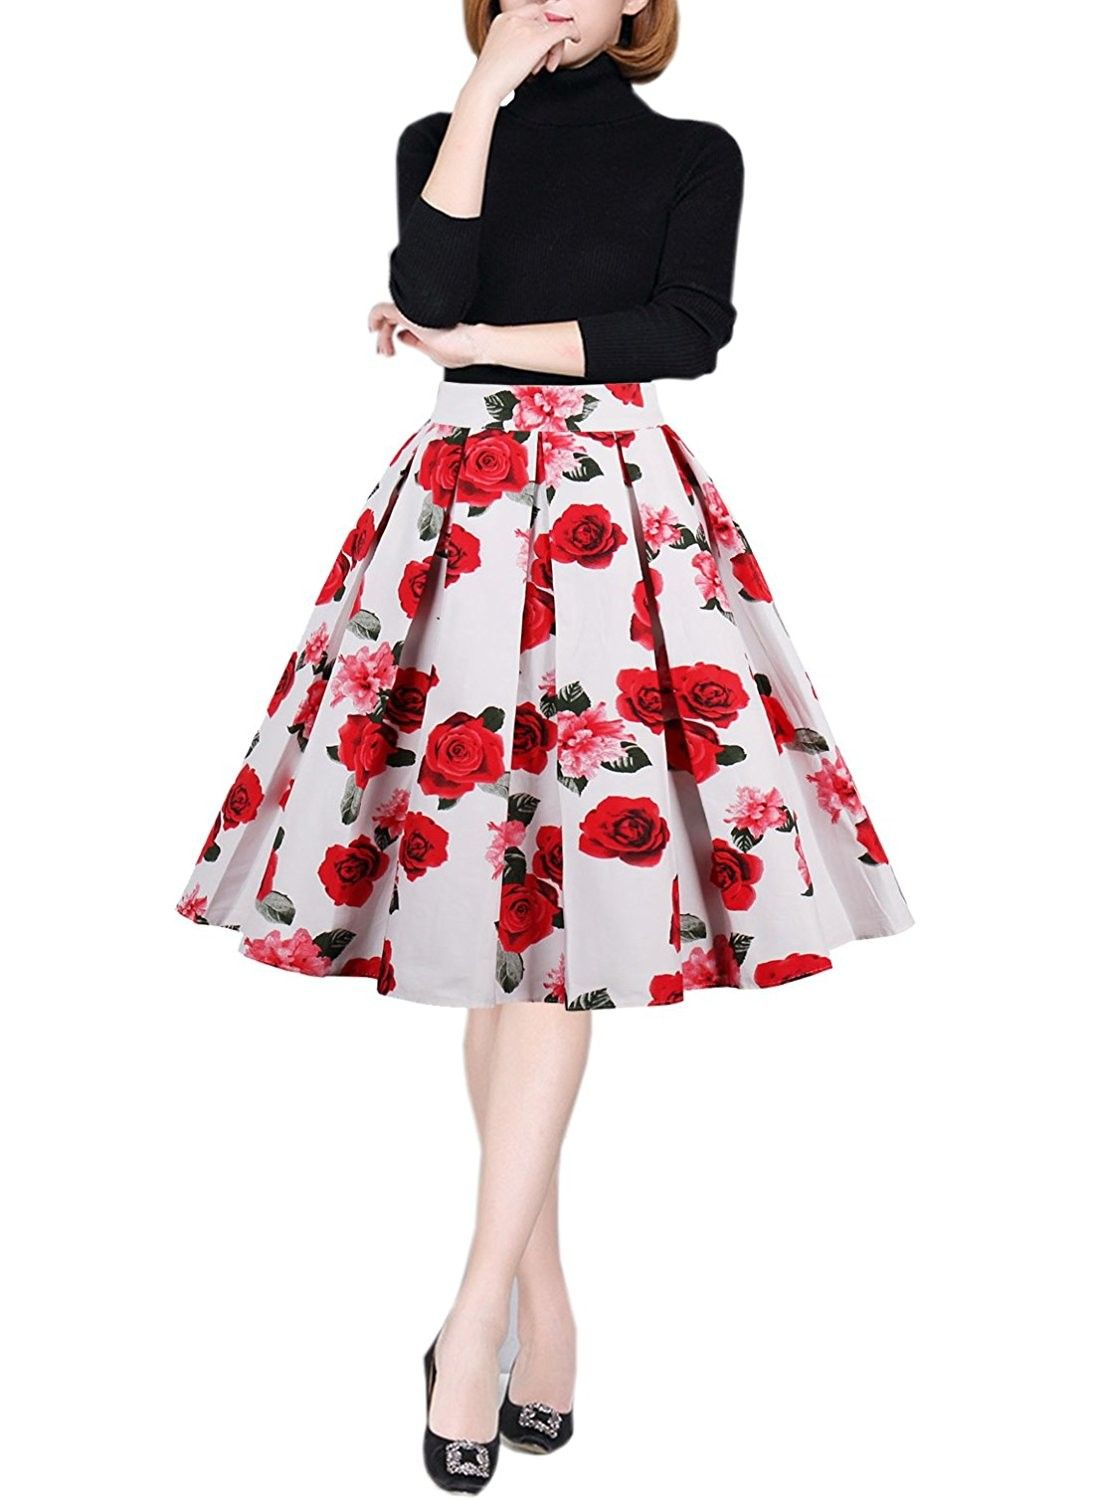 4527f8e95 Women's Retro Printed Flared Skirt A-Line Swing Casual Pleated Midi Skirts  - E05 - CI187ZE50Q2,Women's Clothing, Skirts #women #fashion #style  #outfits ...